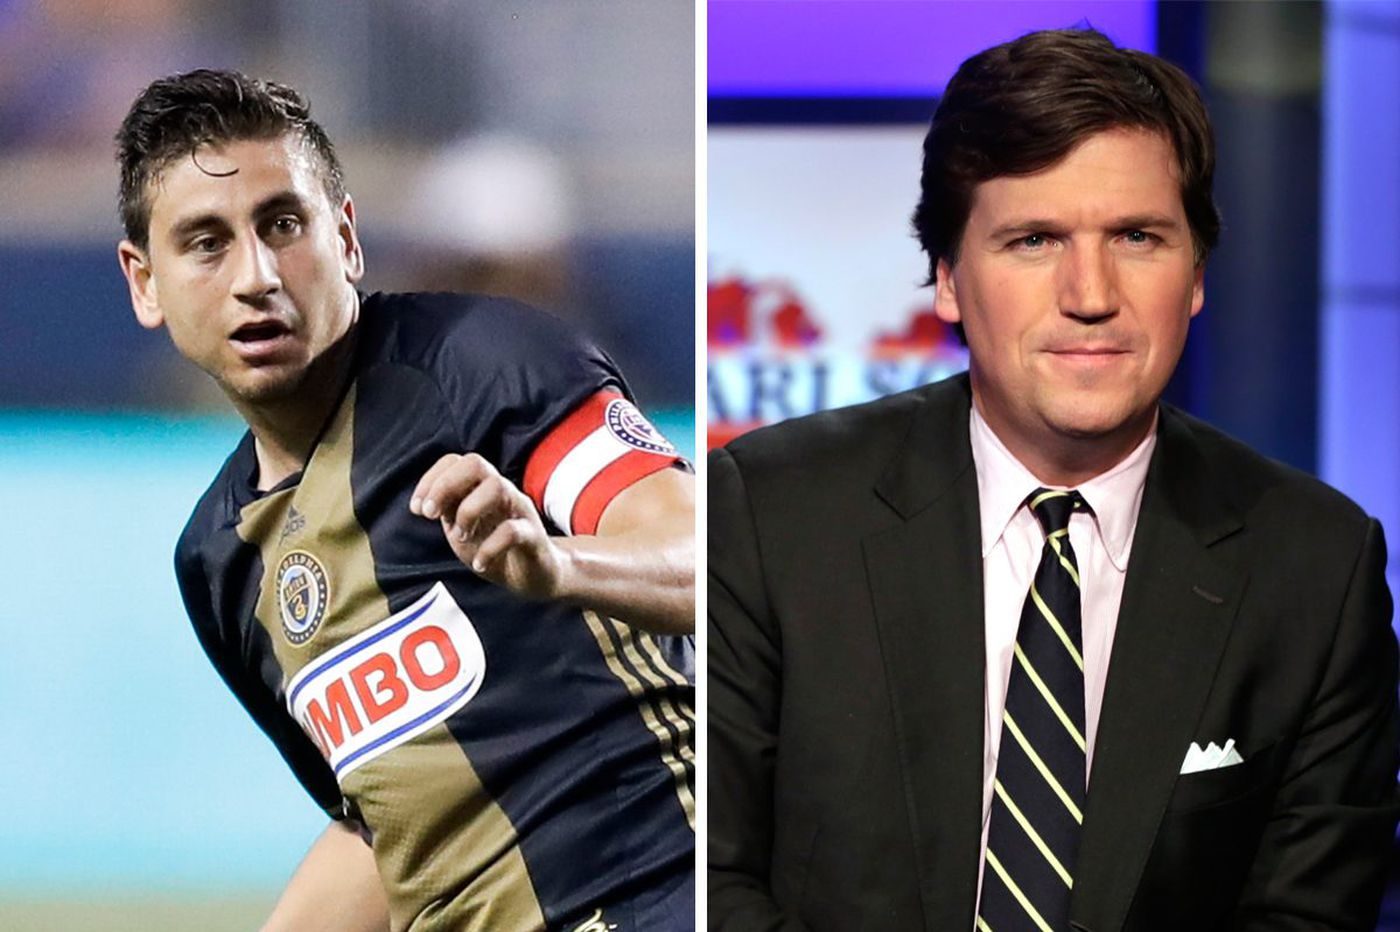 Union midfielder Alejandro Bedoya goes after Fox News host Tucker Carlson